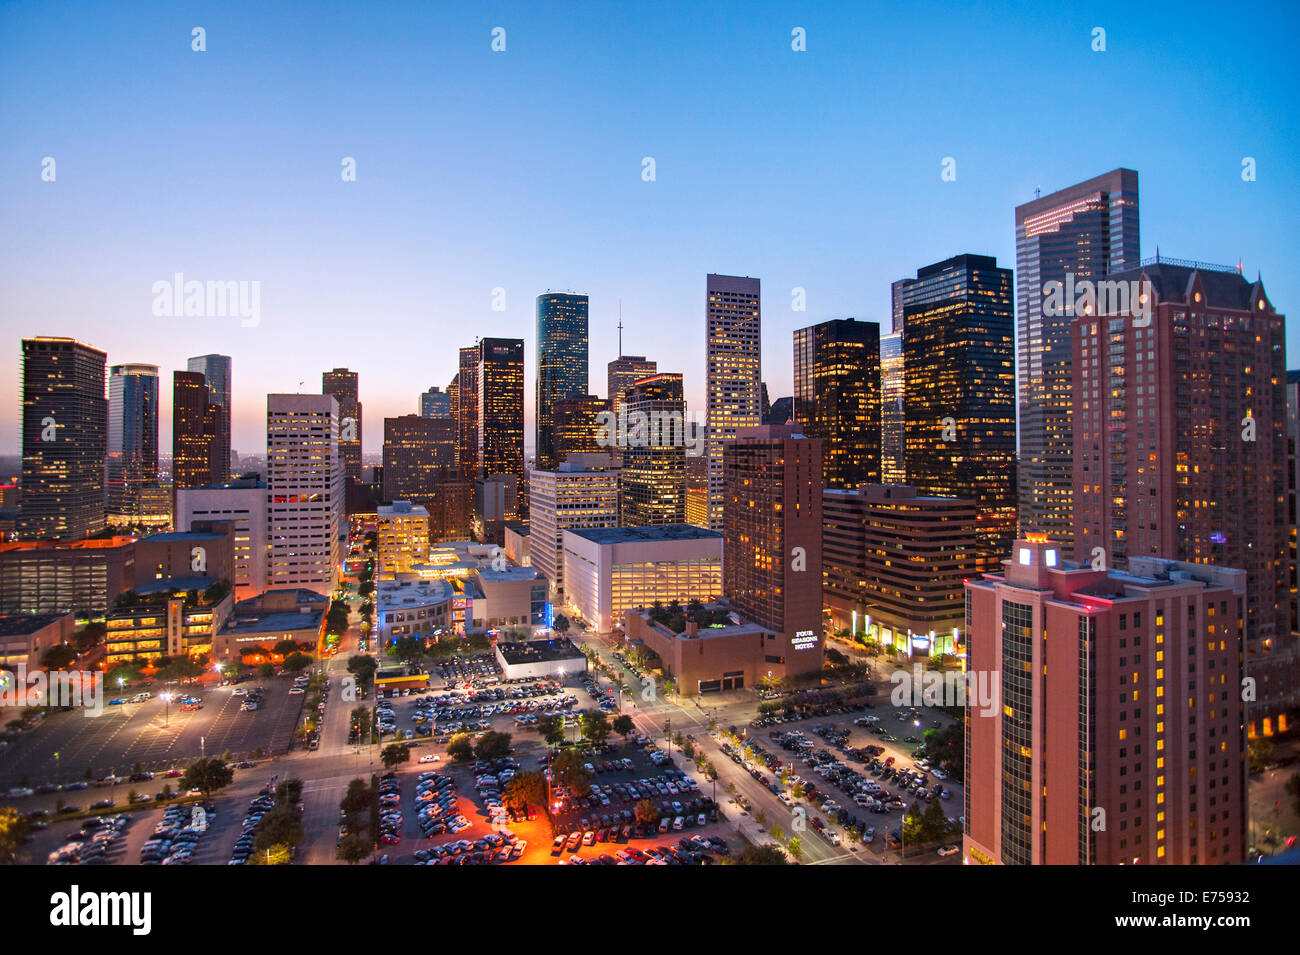 Skyline von Houston, Texas Stockbild